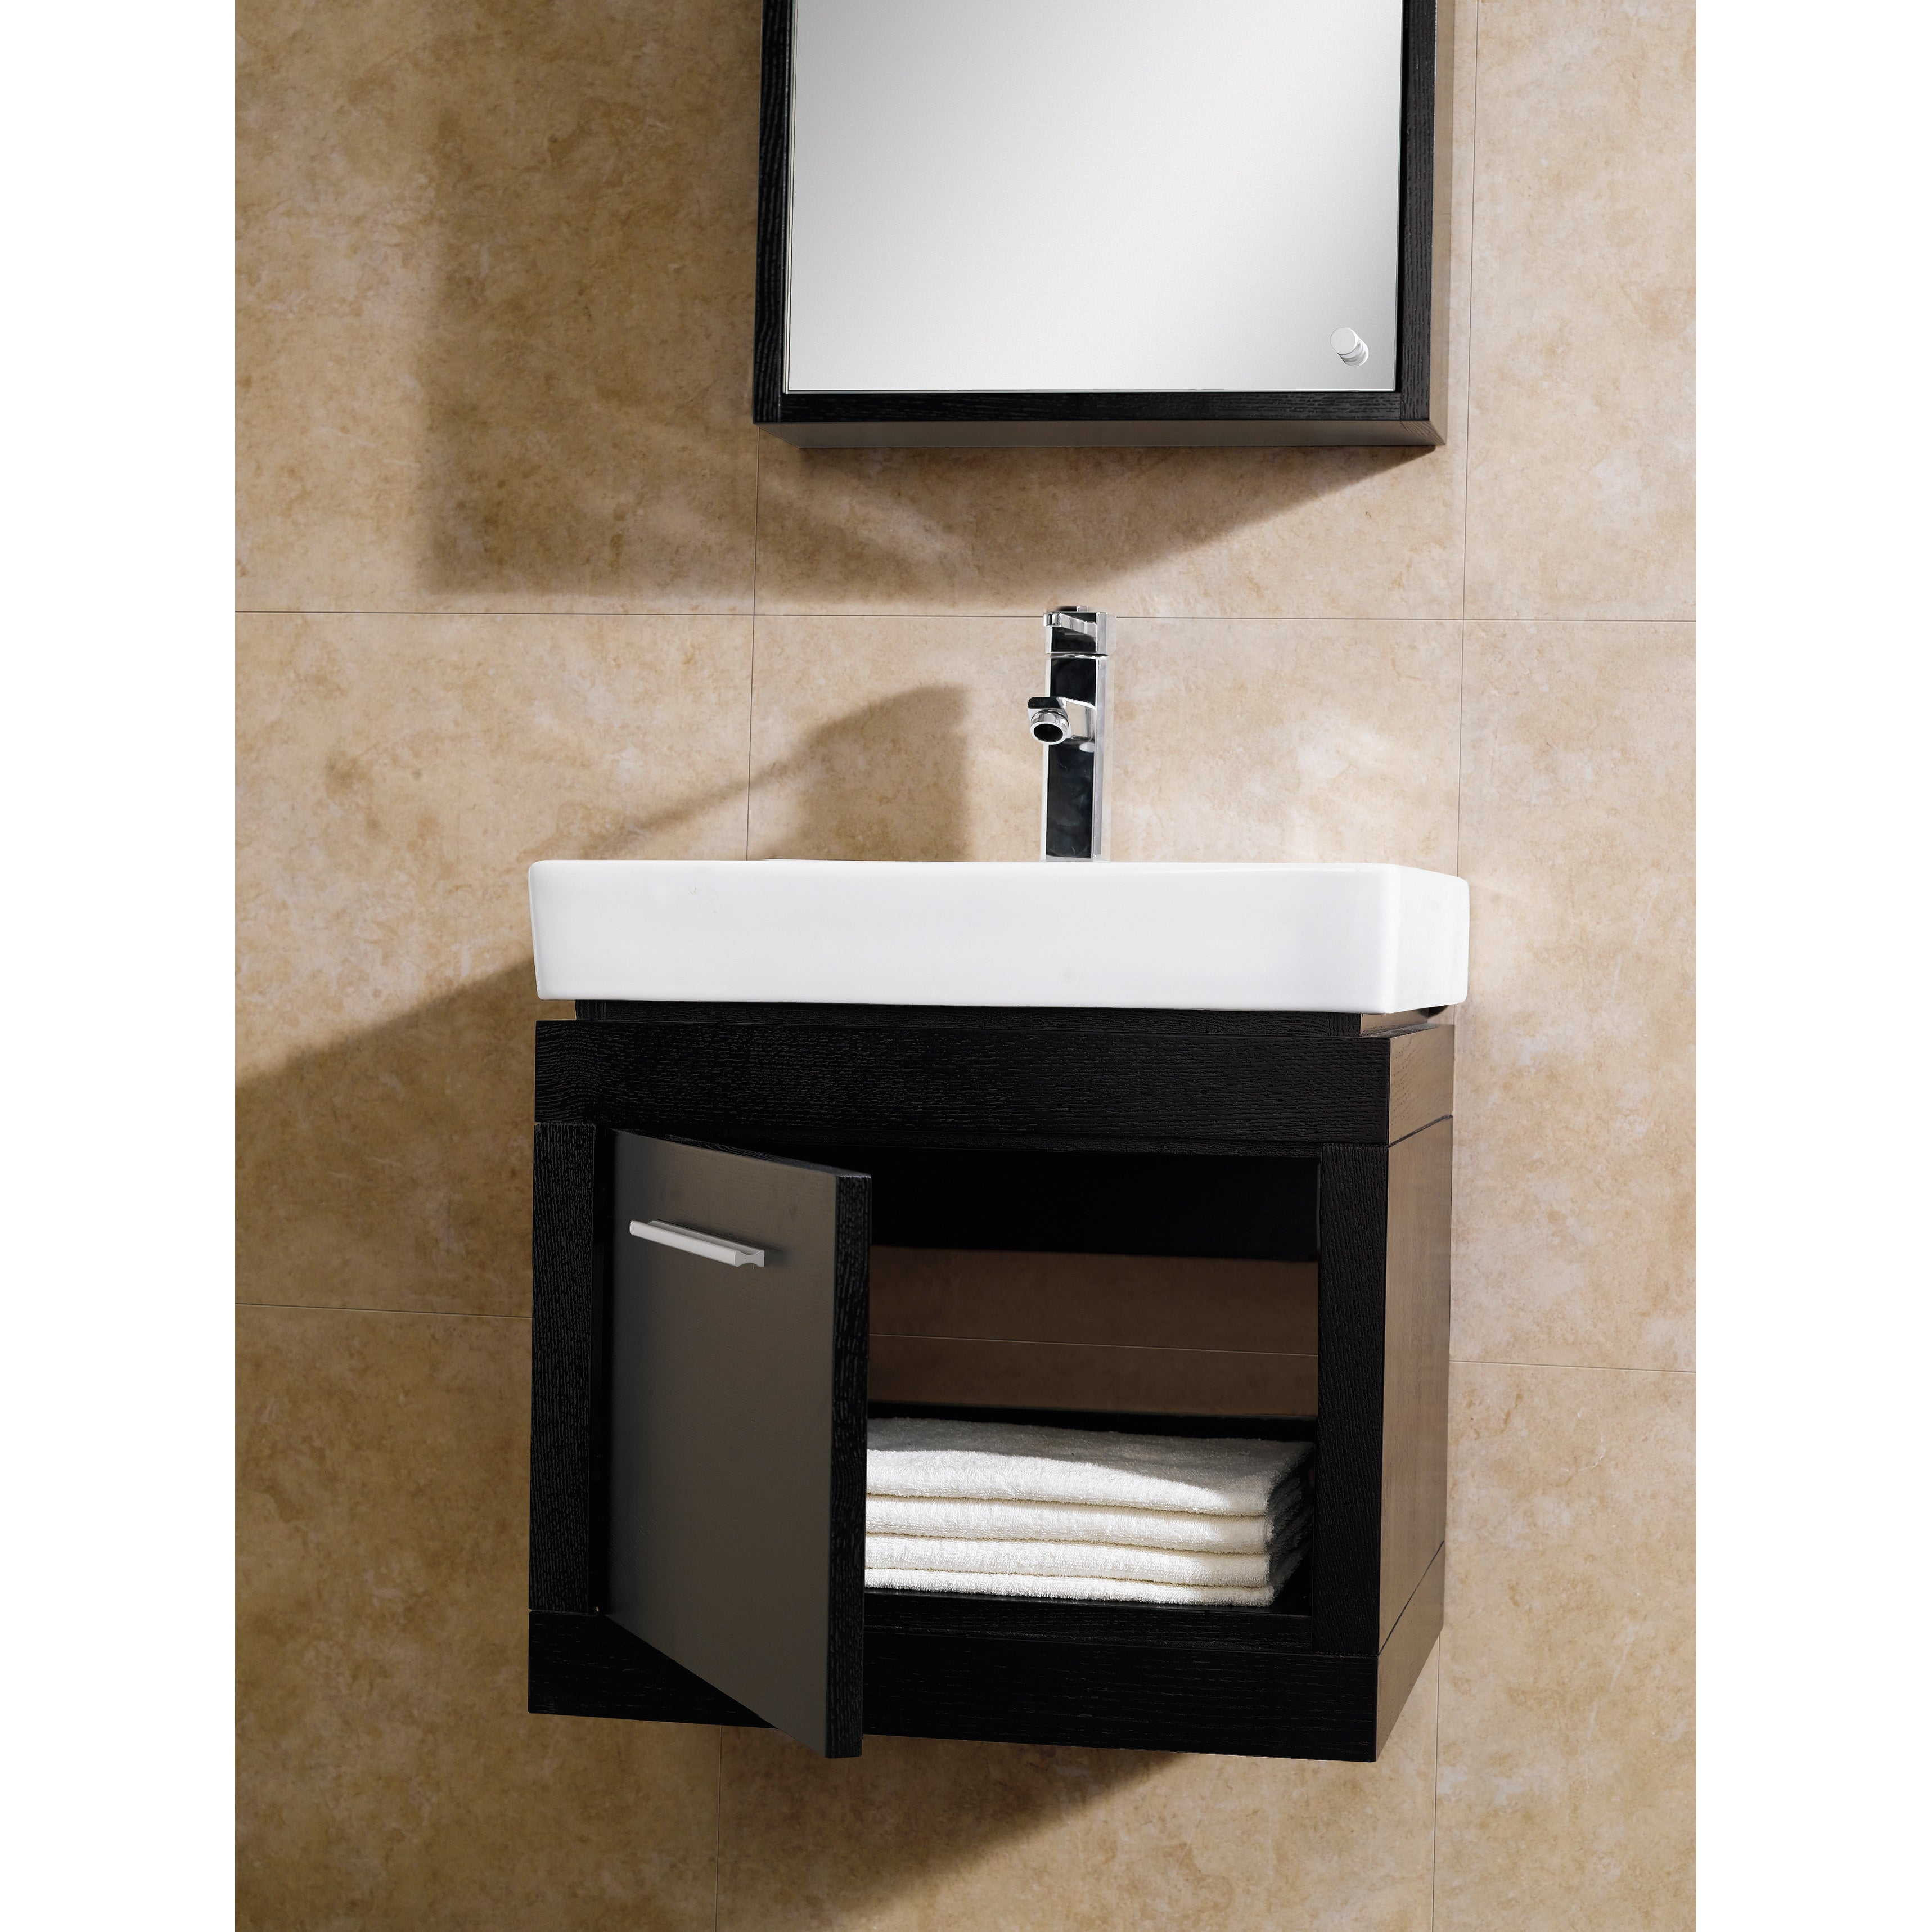 Shop Black Friday Deals On Fine Fixtures Glamour 20 Inch Vanity With Vitreous China Sink Top On Sale Overstock 10173237 Tan